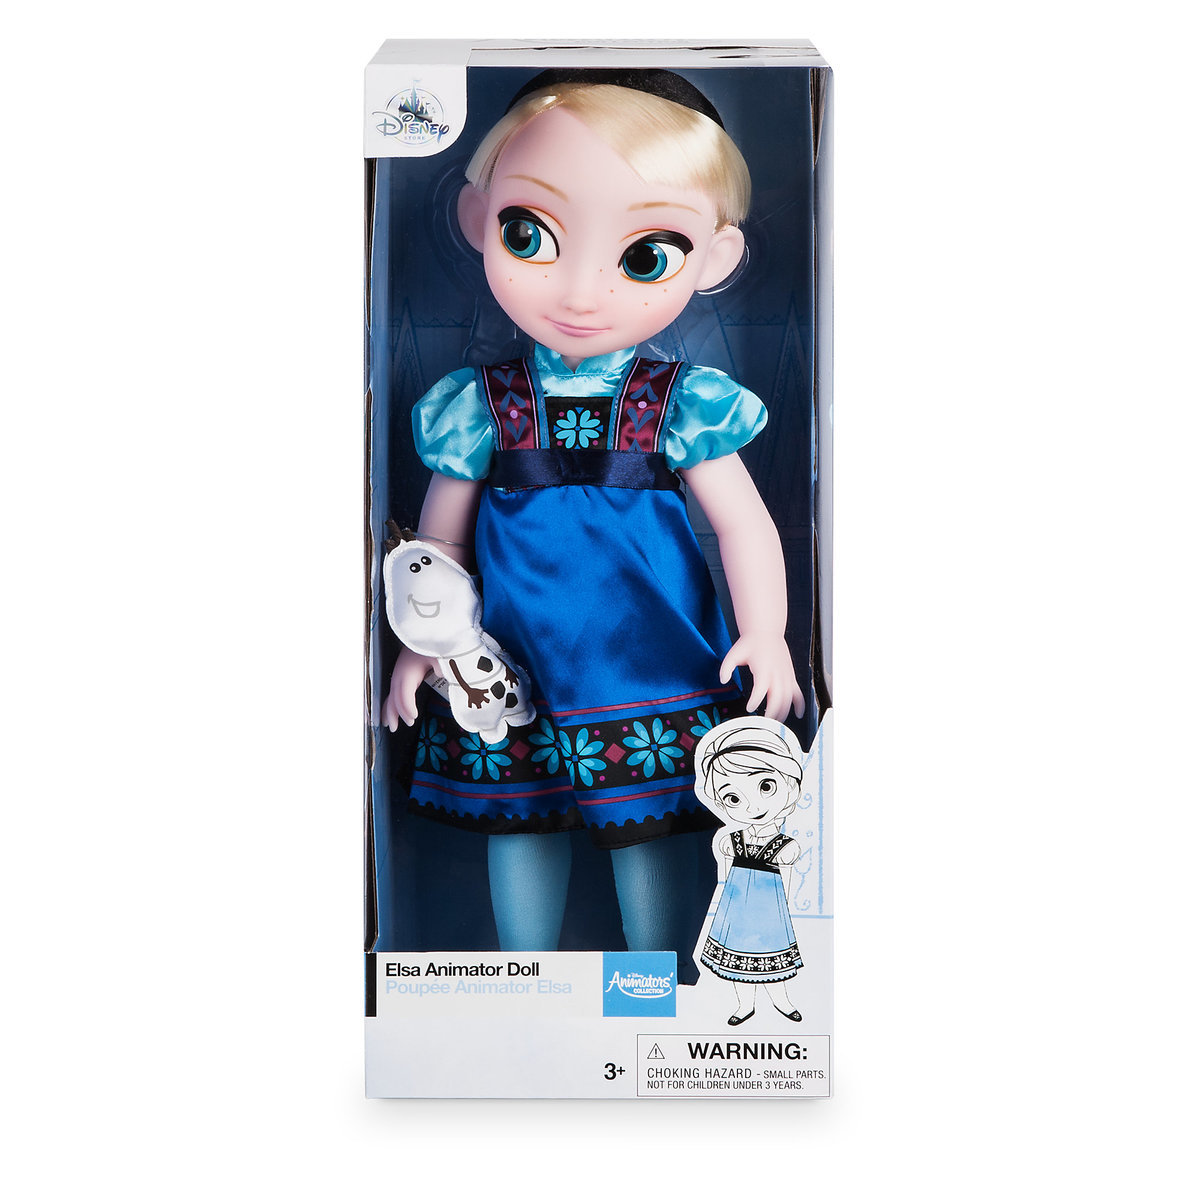 Disney Princess Animators' Collection Elsa Doll From Frozen